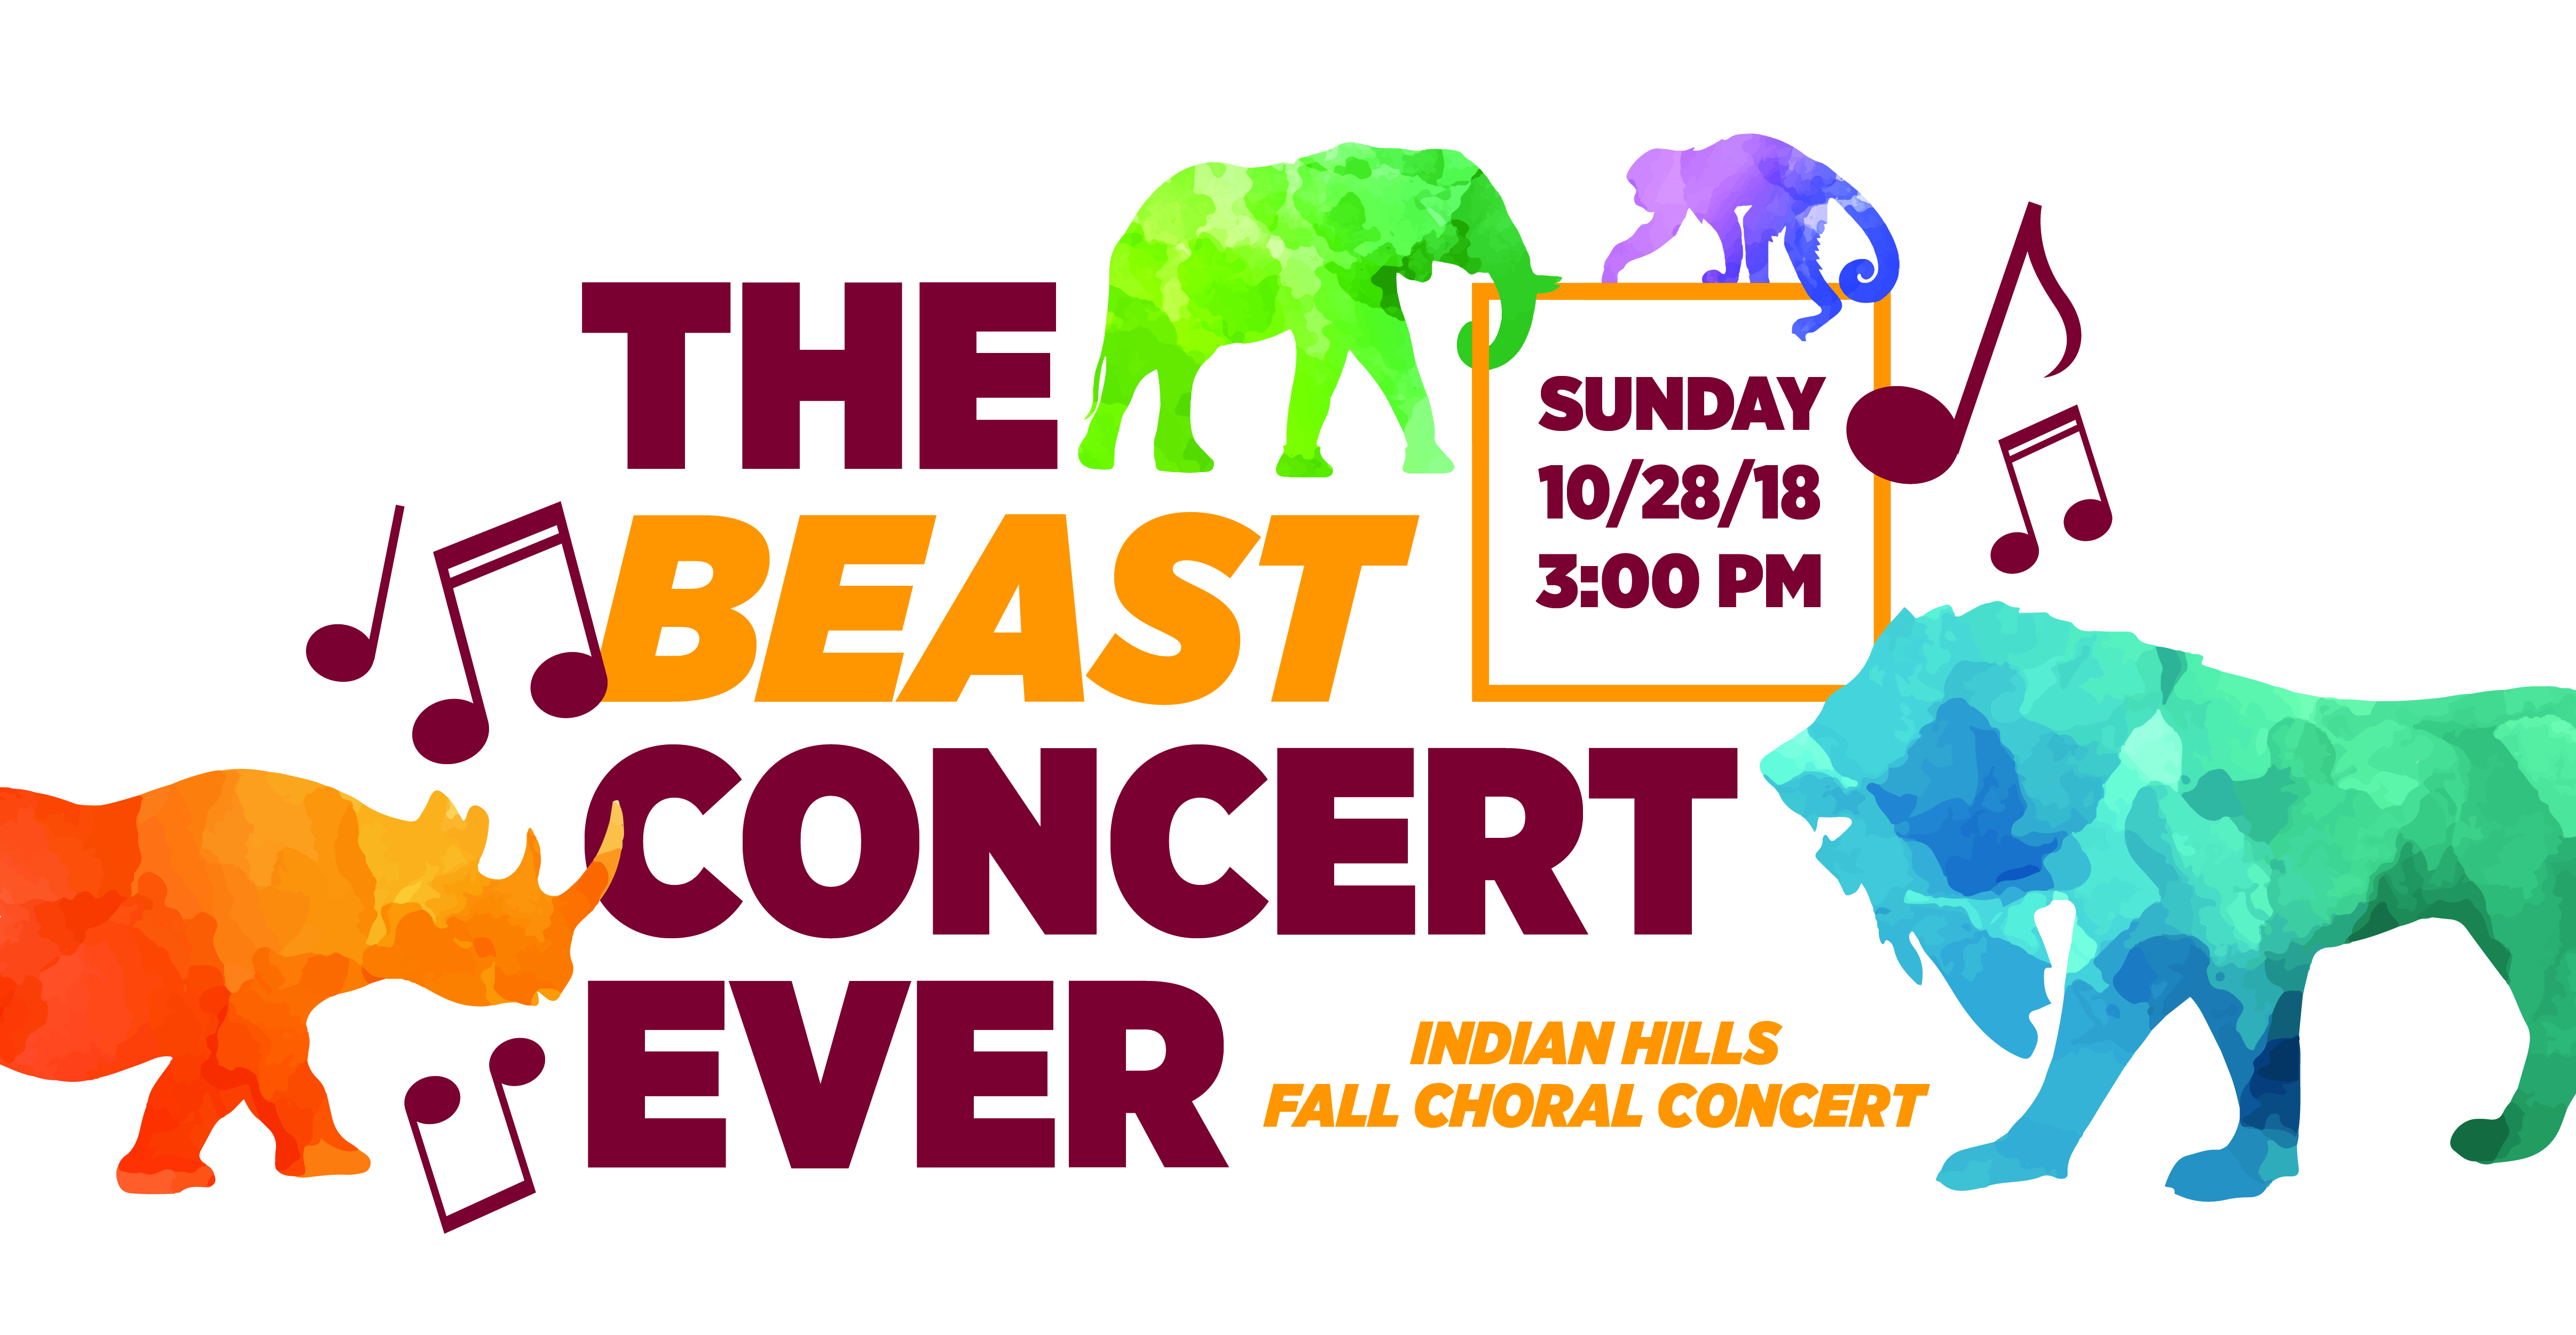 Fall Choral Concert: The Beast Show Ever